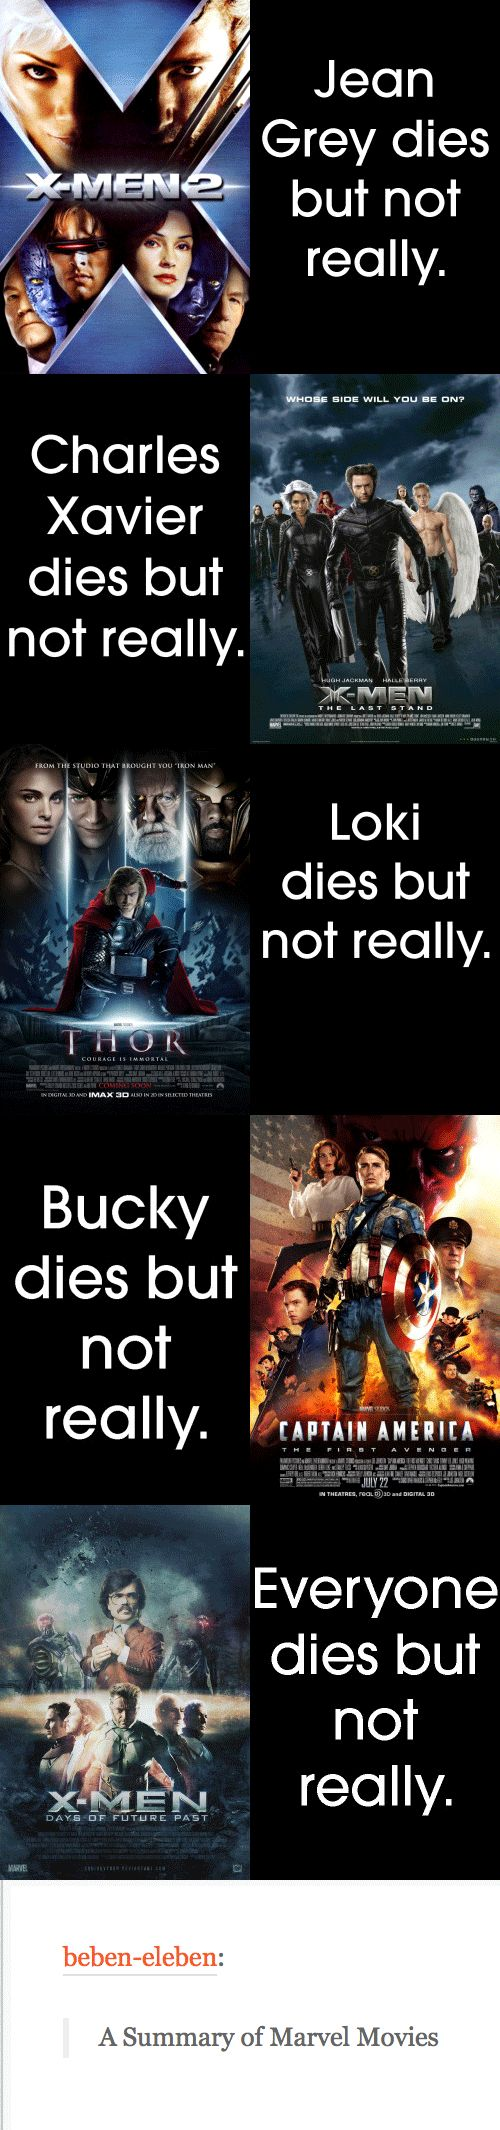 Sometimes The Internet Makes Some Excellent Points About Movies